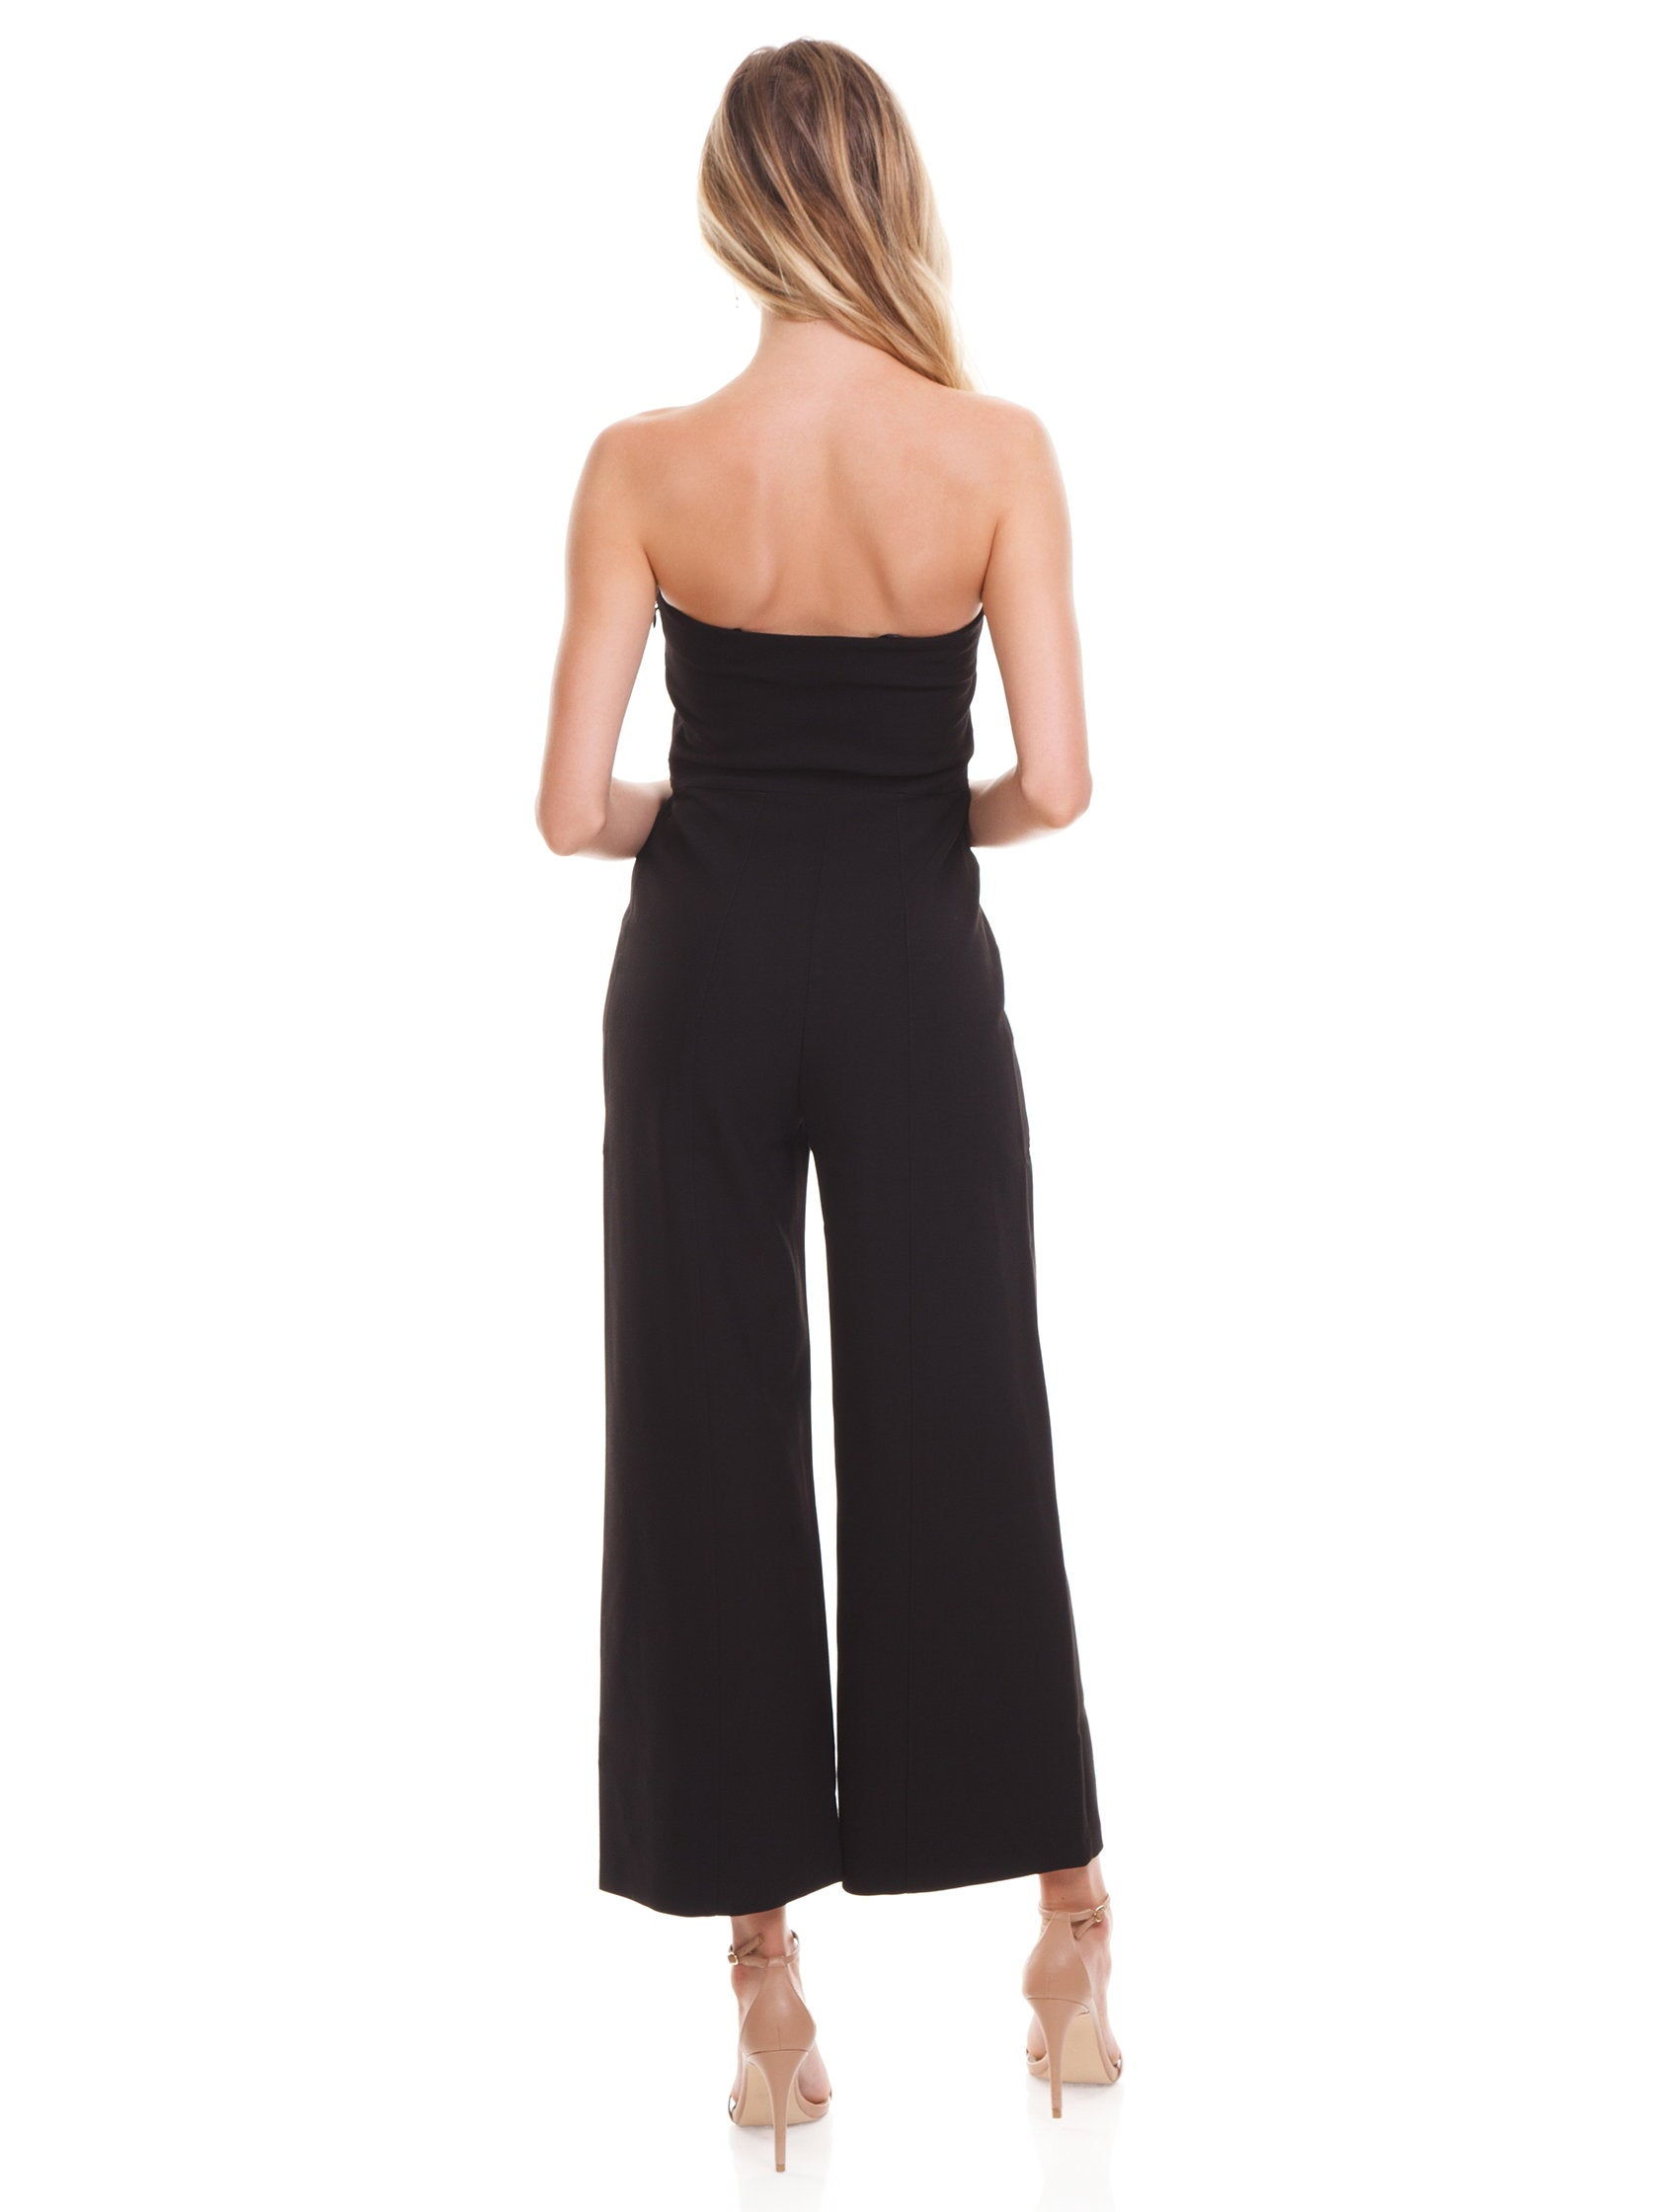 Women wearing a jumpsuit rental from LIKELY called Isla Jumpsuit